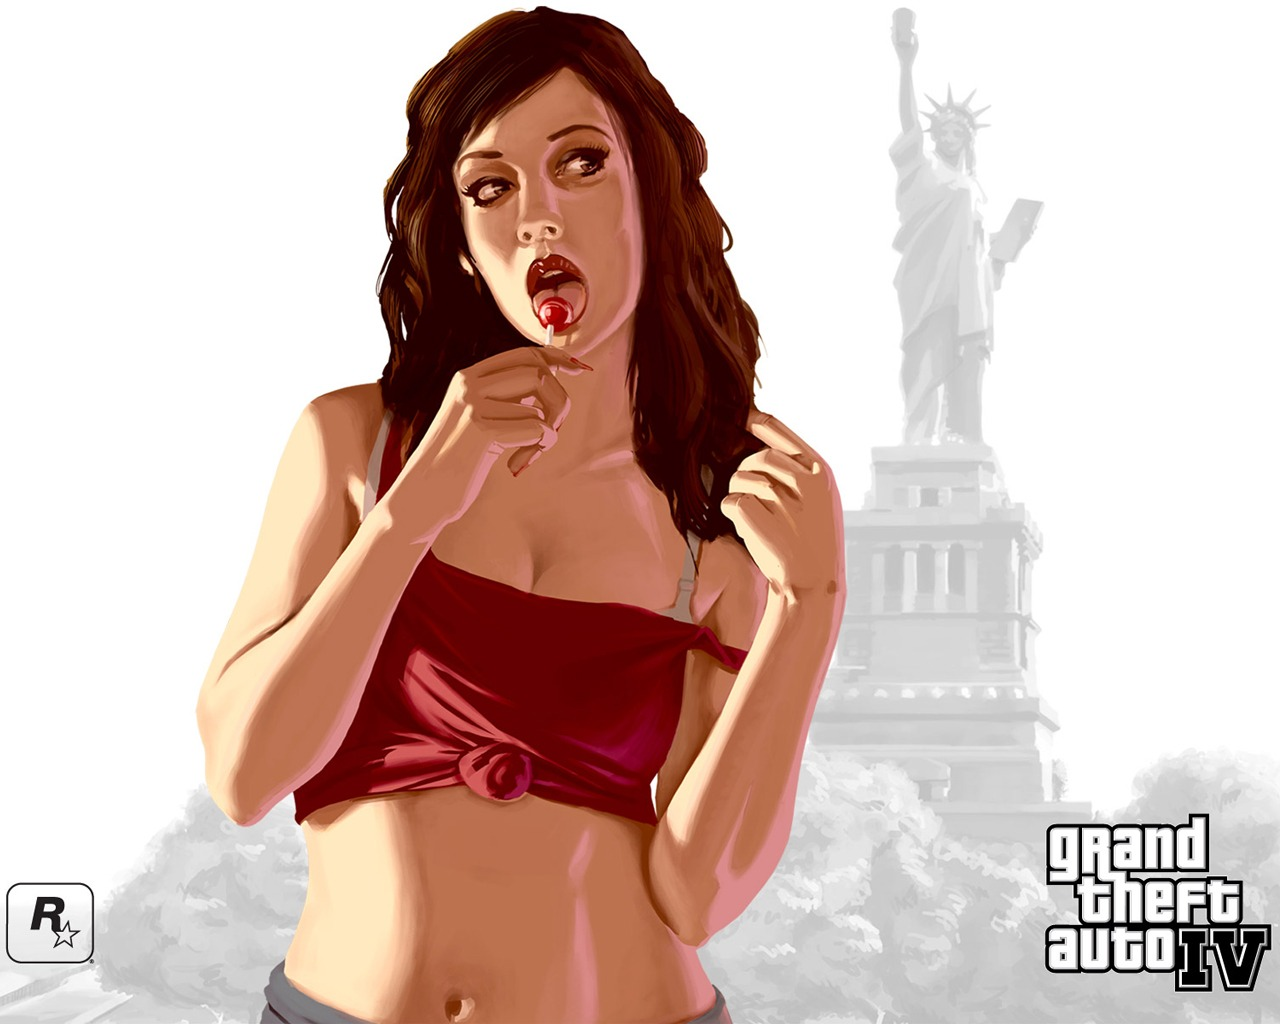 Image Result For Gta Niko Bellic And His Girl Wallpaper Gta Iv Games Wallpapers